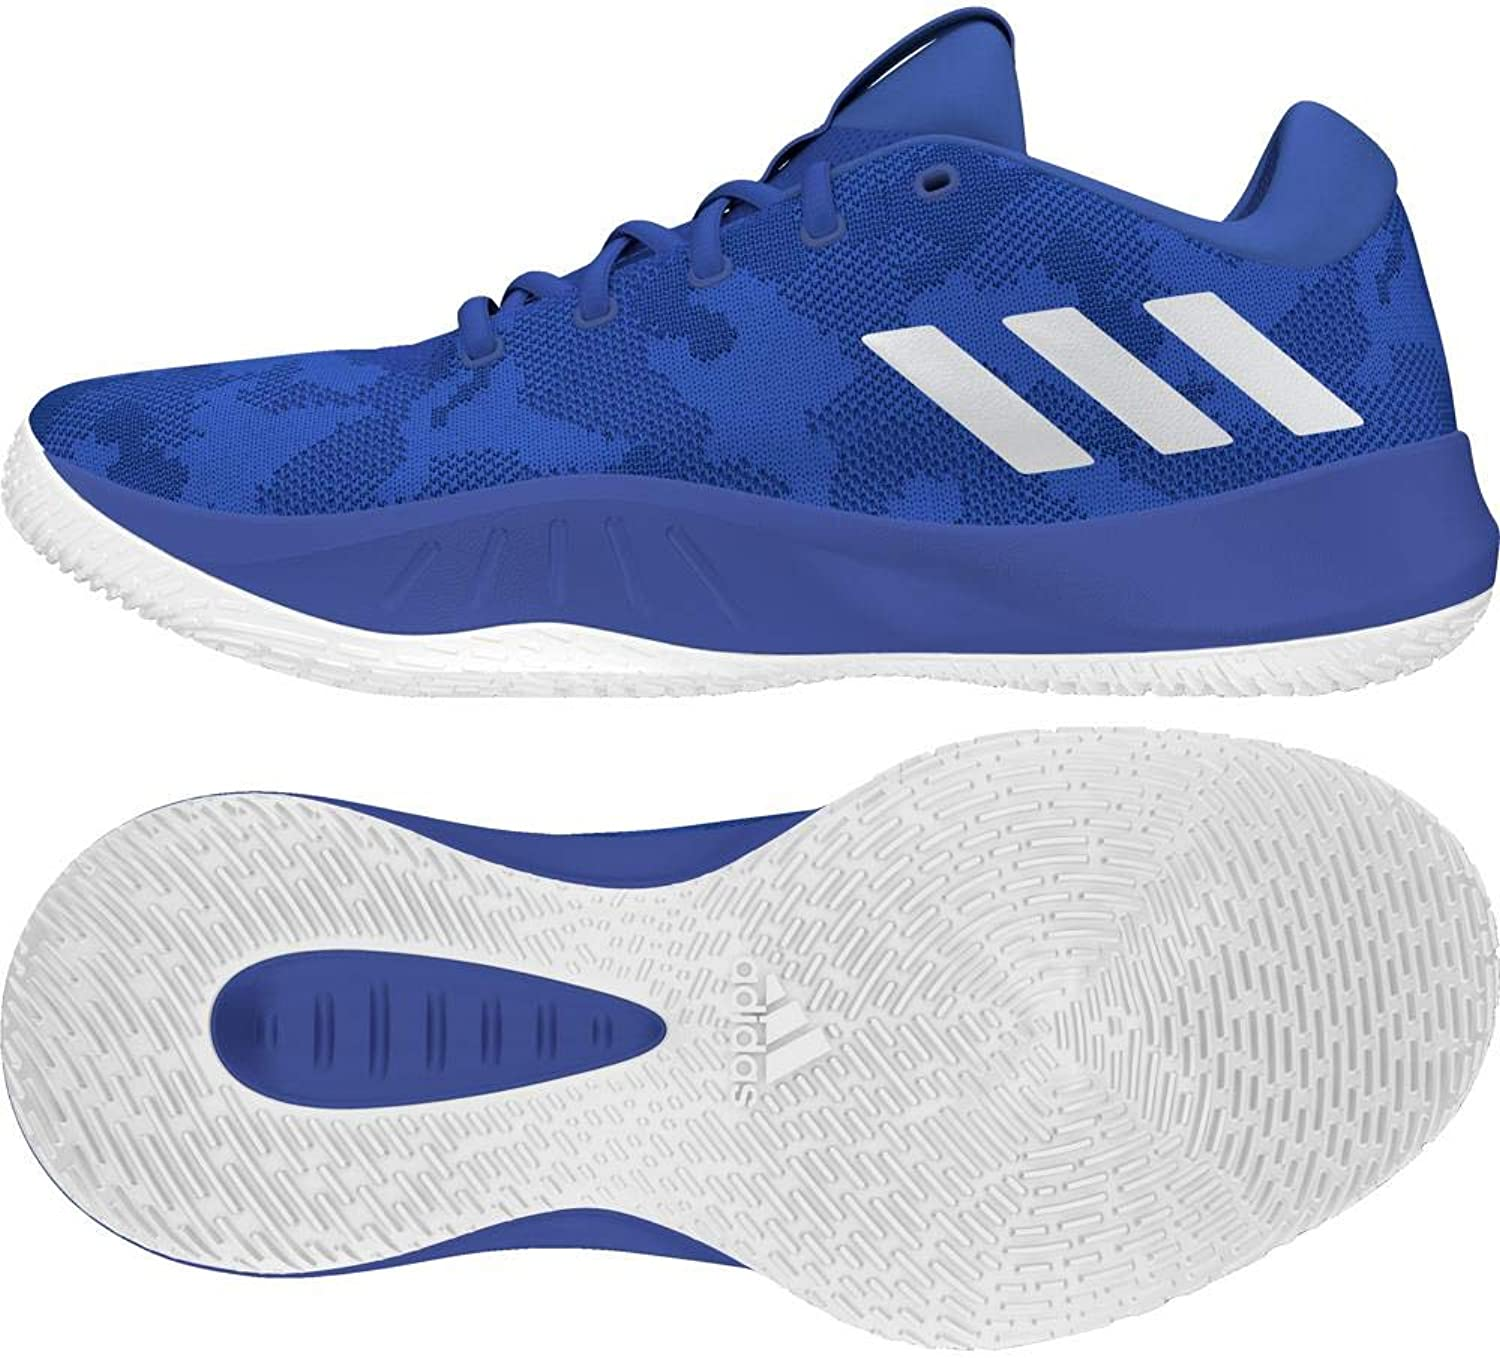 Adidas Men's's Next Level Speed Vi Basketball shoes